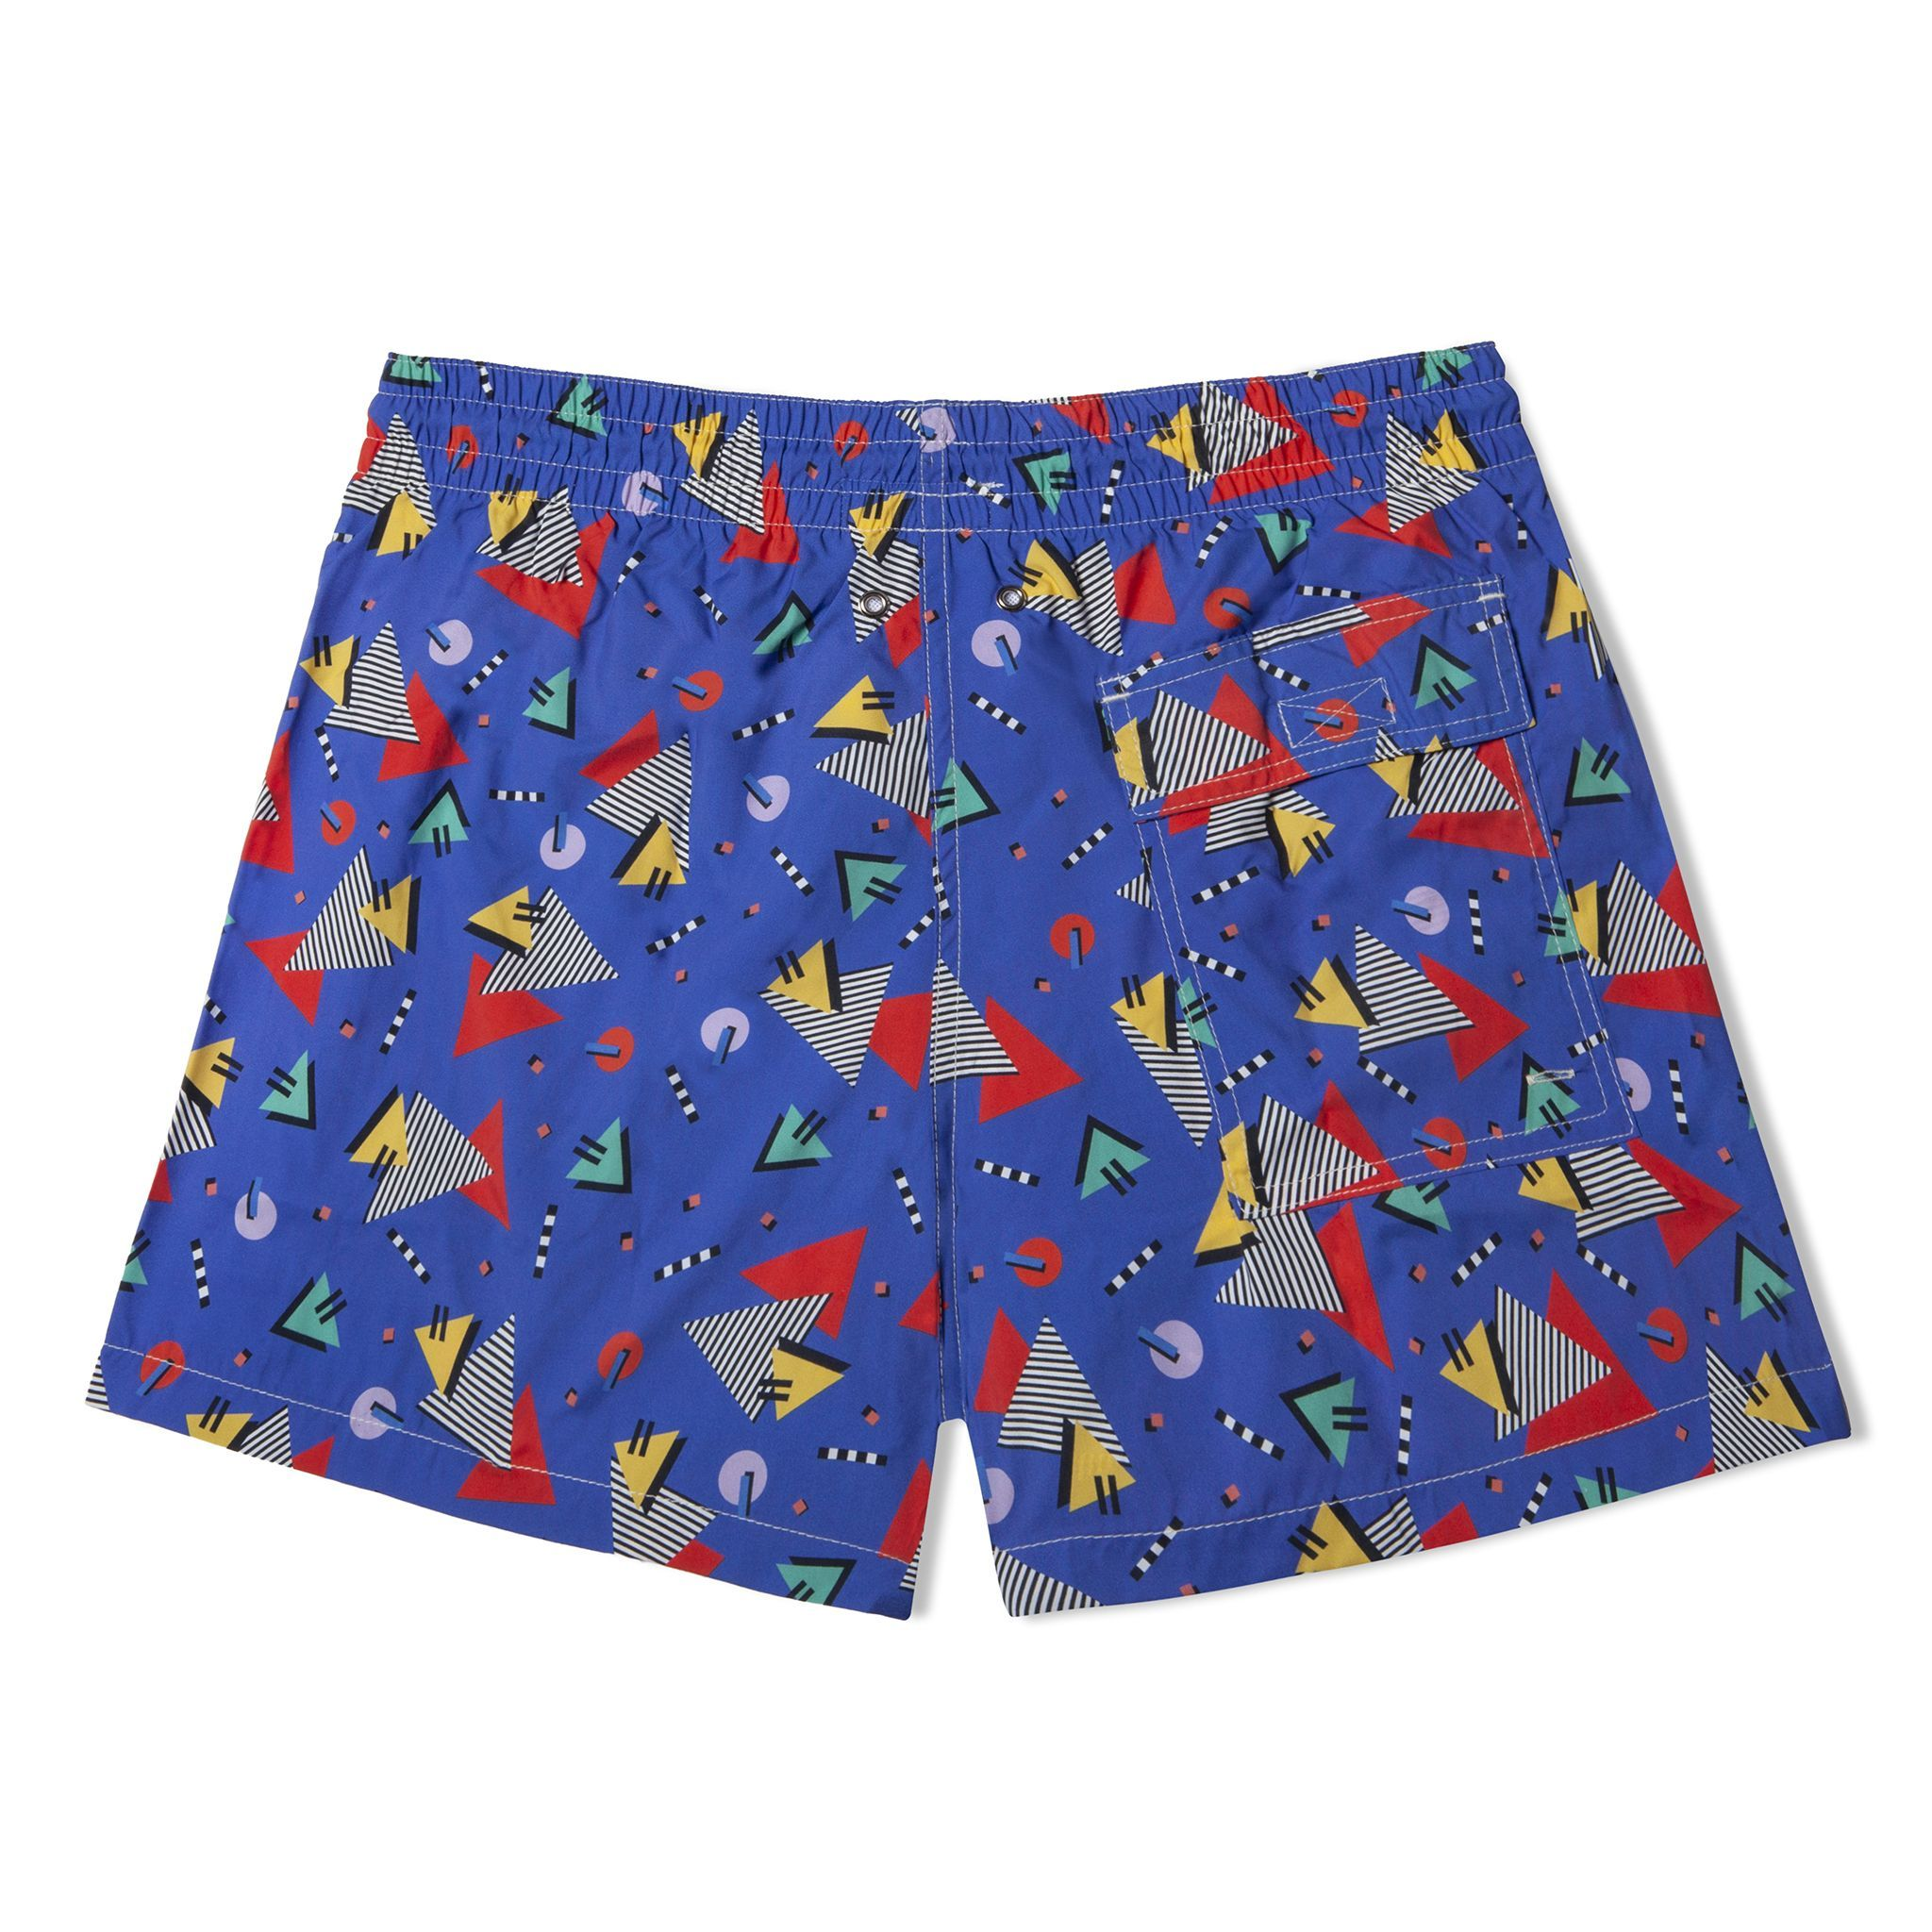 Short-Length Swim Shorts Blue Miami Vice